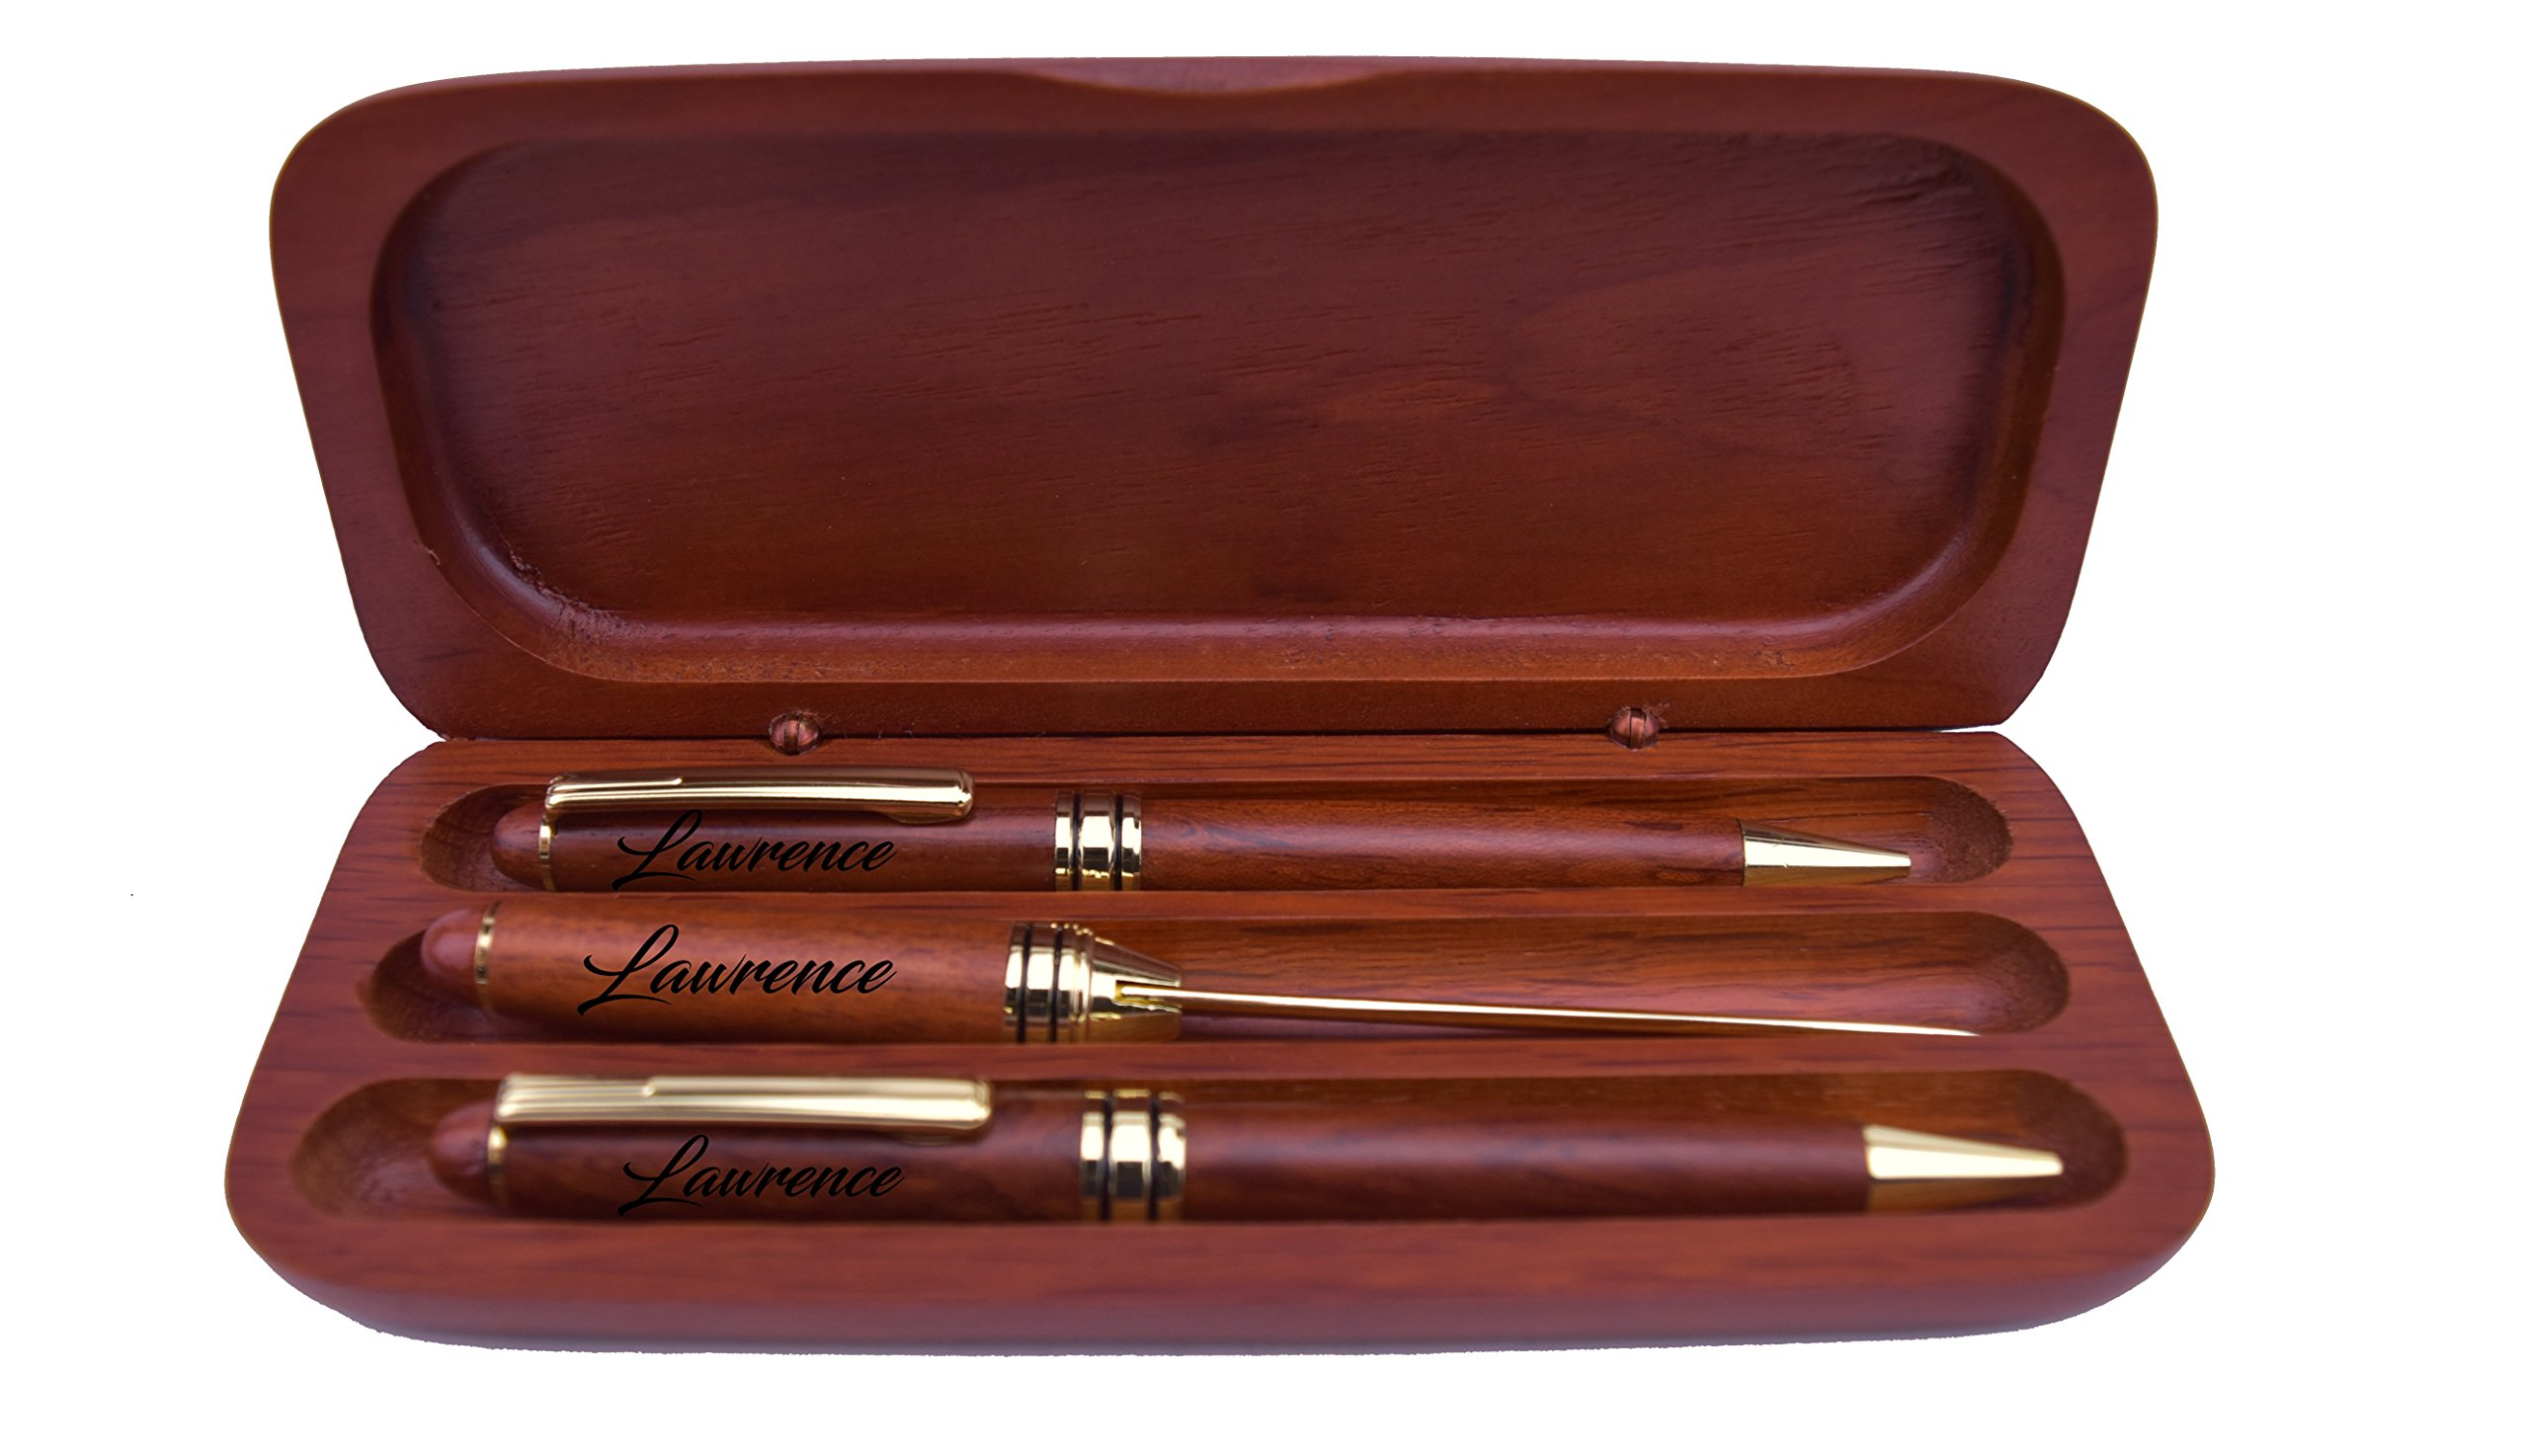 Engraved/Personalized Rosewood Pen, Pencil & Mail Opener Gift Set | Sofia's Findings